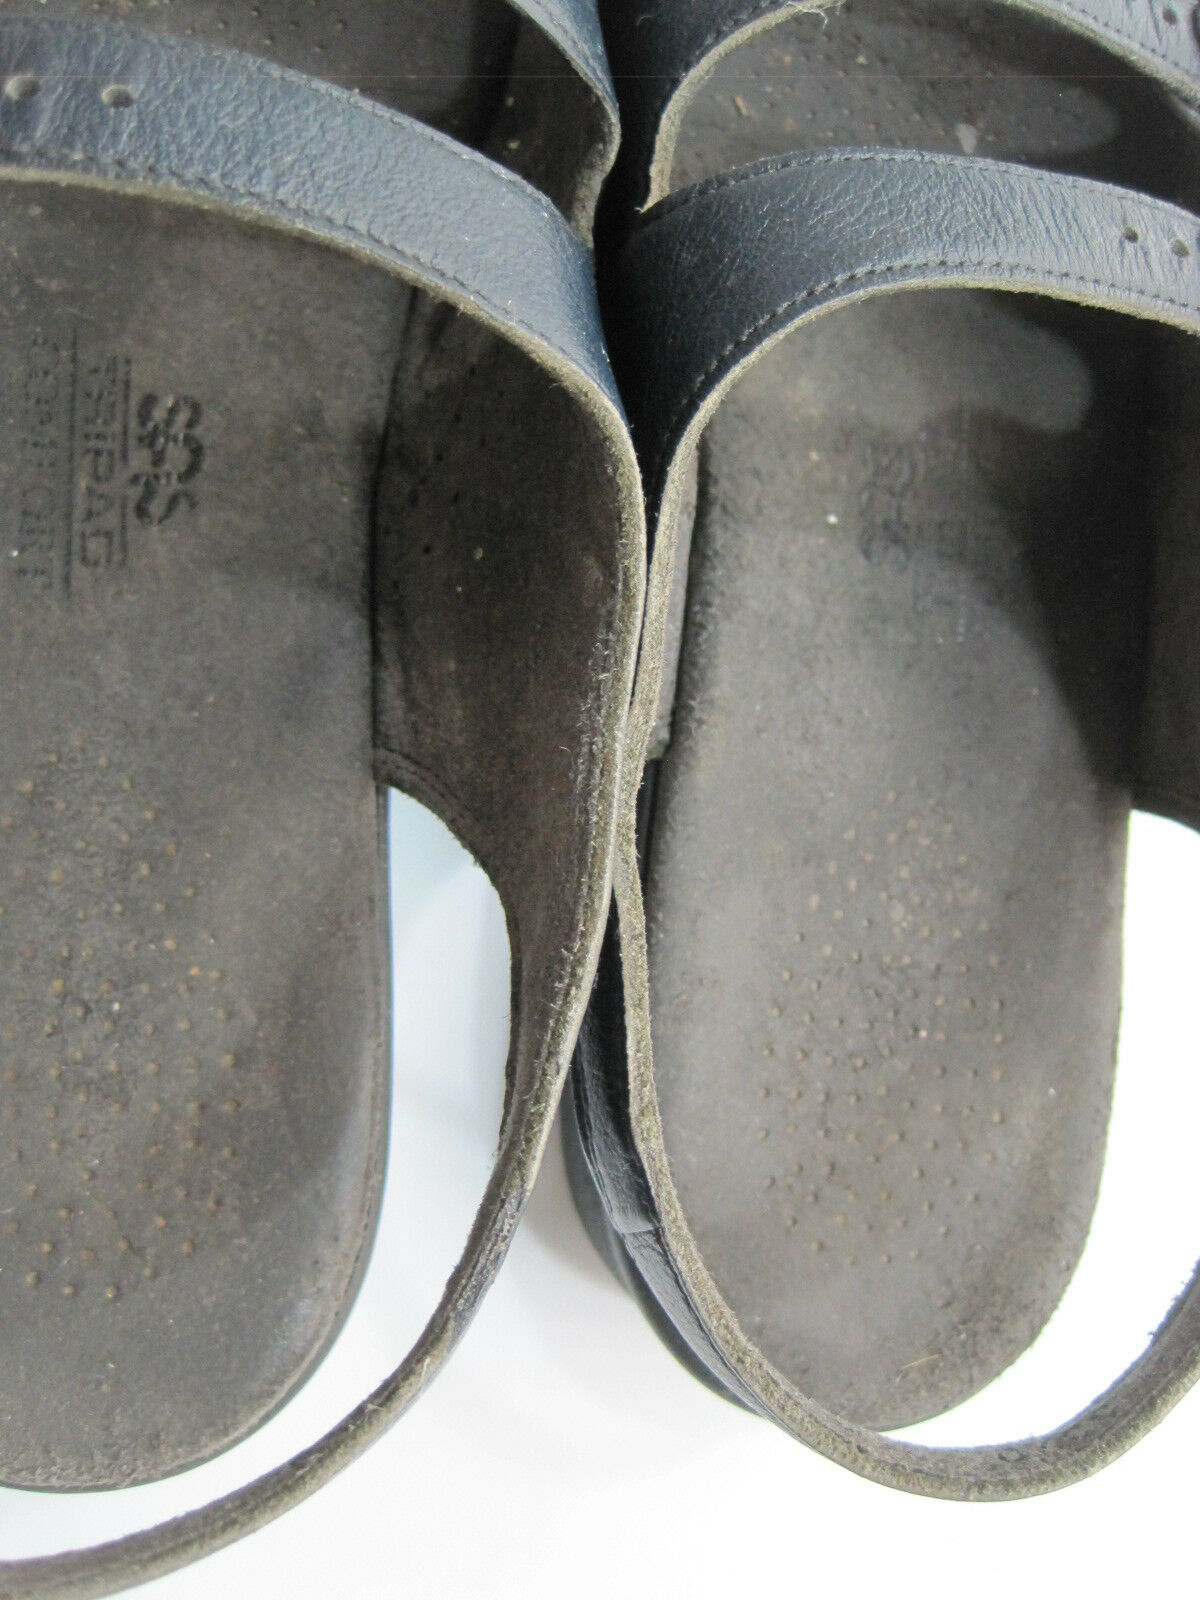 SAS Women Tri-Pad Tri-Pad Tri-Pad Comfort Sandals Size 8 bluee Leather Foot Bed Style 8370 1e6aaa